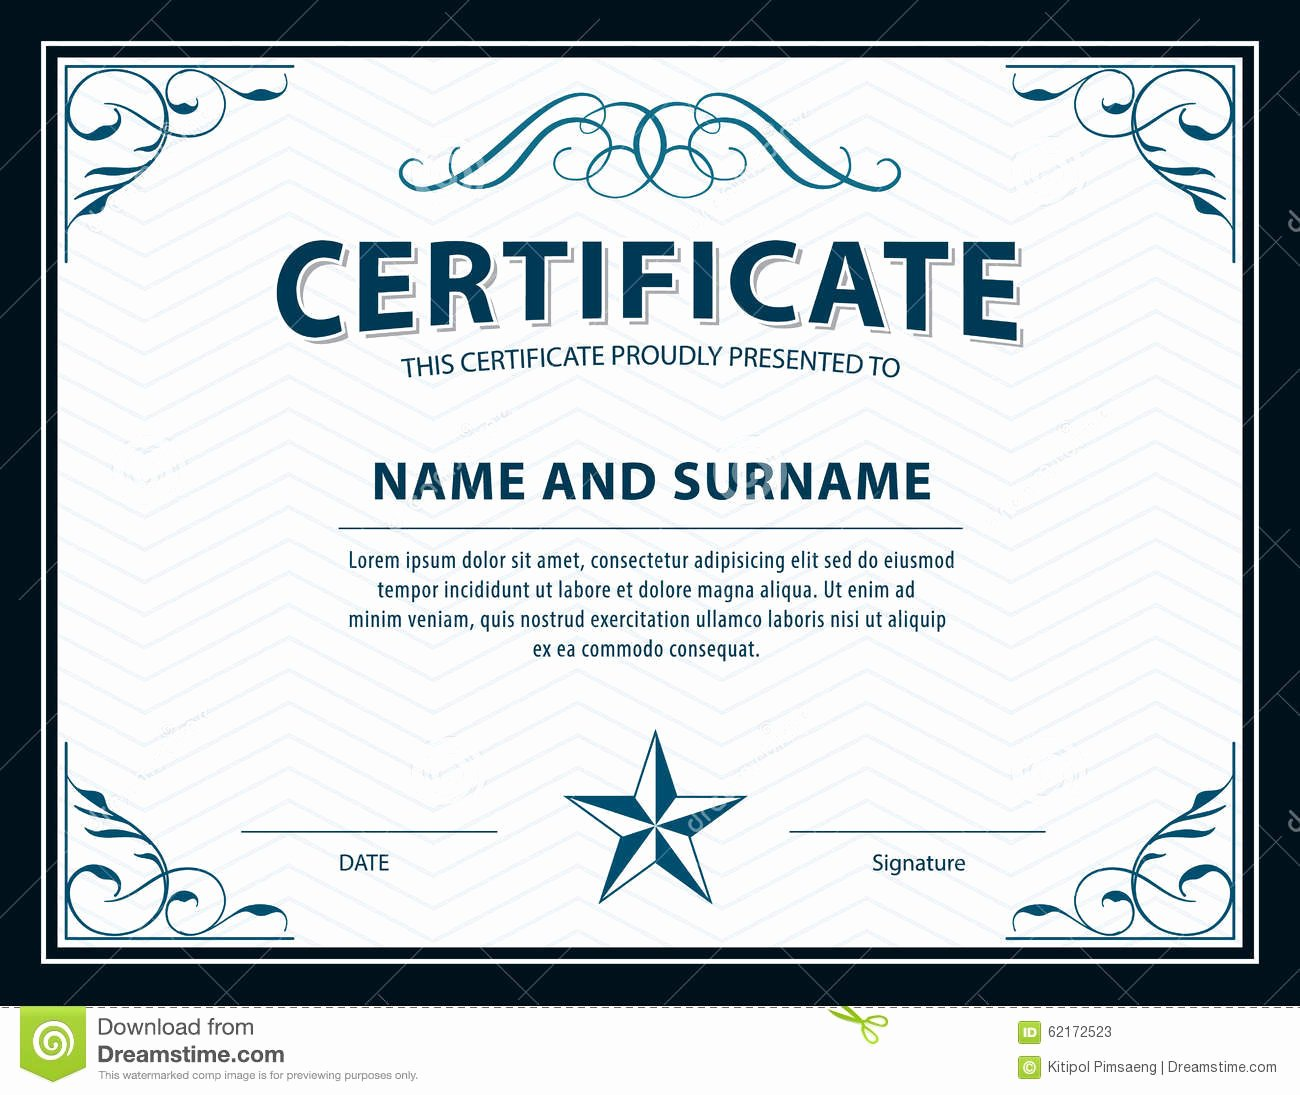 Size Of Certificate Paper New Certificate Template Diploma Letter Size Vector Stock